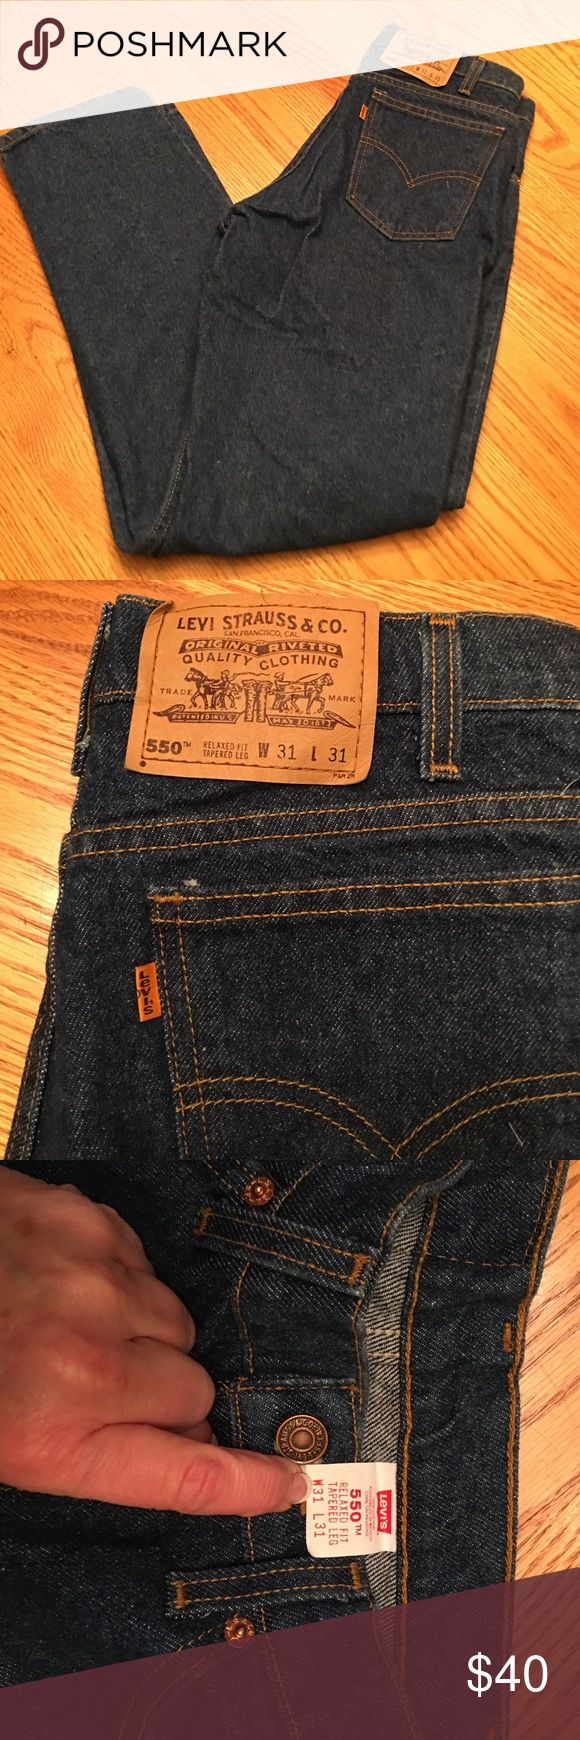 NWOT Levi 550 Orange Tab Relaxed Fit Tapered Leg NWOT. Rare orange tan Men's Levi's 550's Relaxed Fit Tapered Leg Jeans. 31x31. Never worn. Excellent condition. Levi's Jeans Relaxed